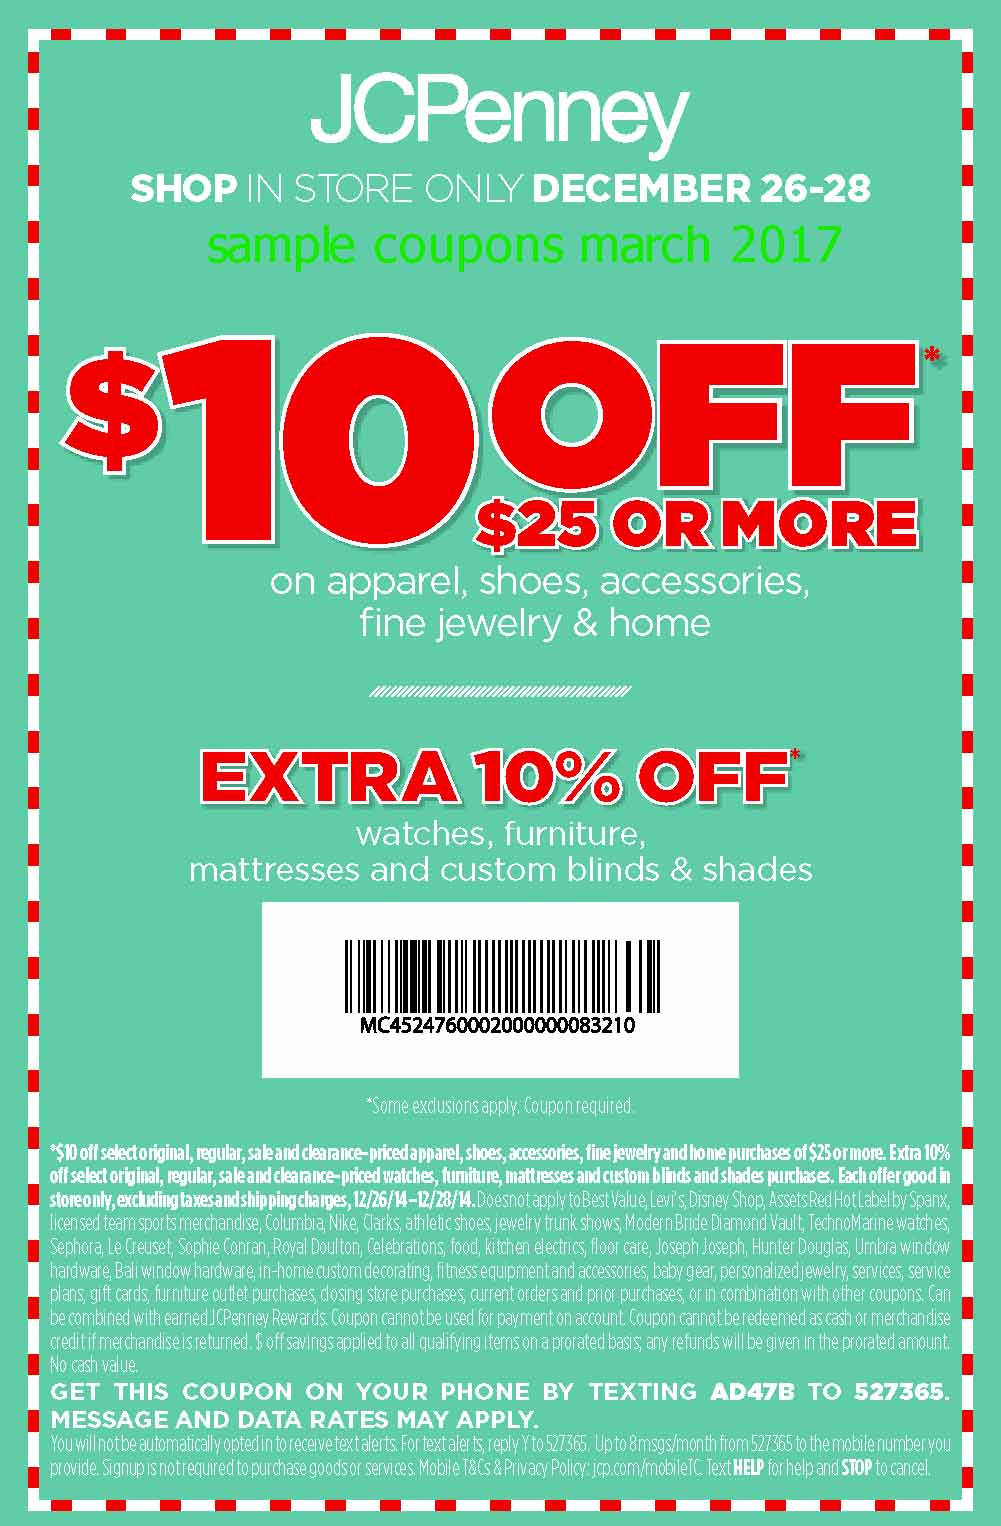 Save 25% at JCPenney with coupon code HOL (click to reveal full code). 19 other JCPenney coupons and deals also available for December